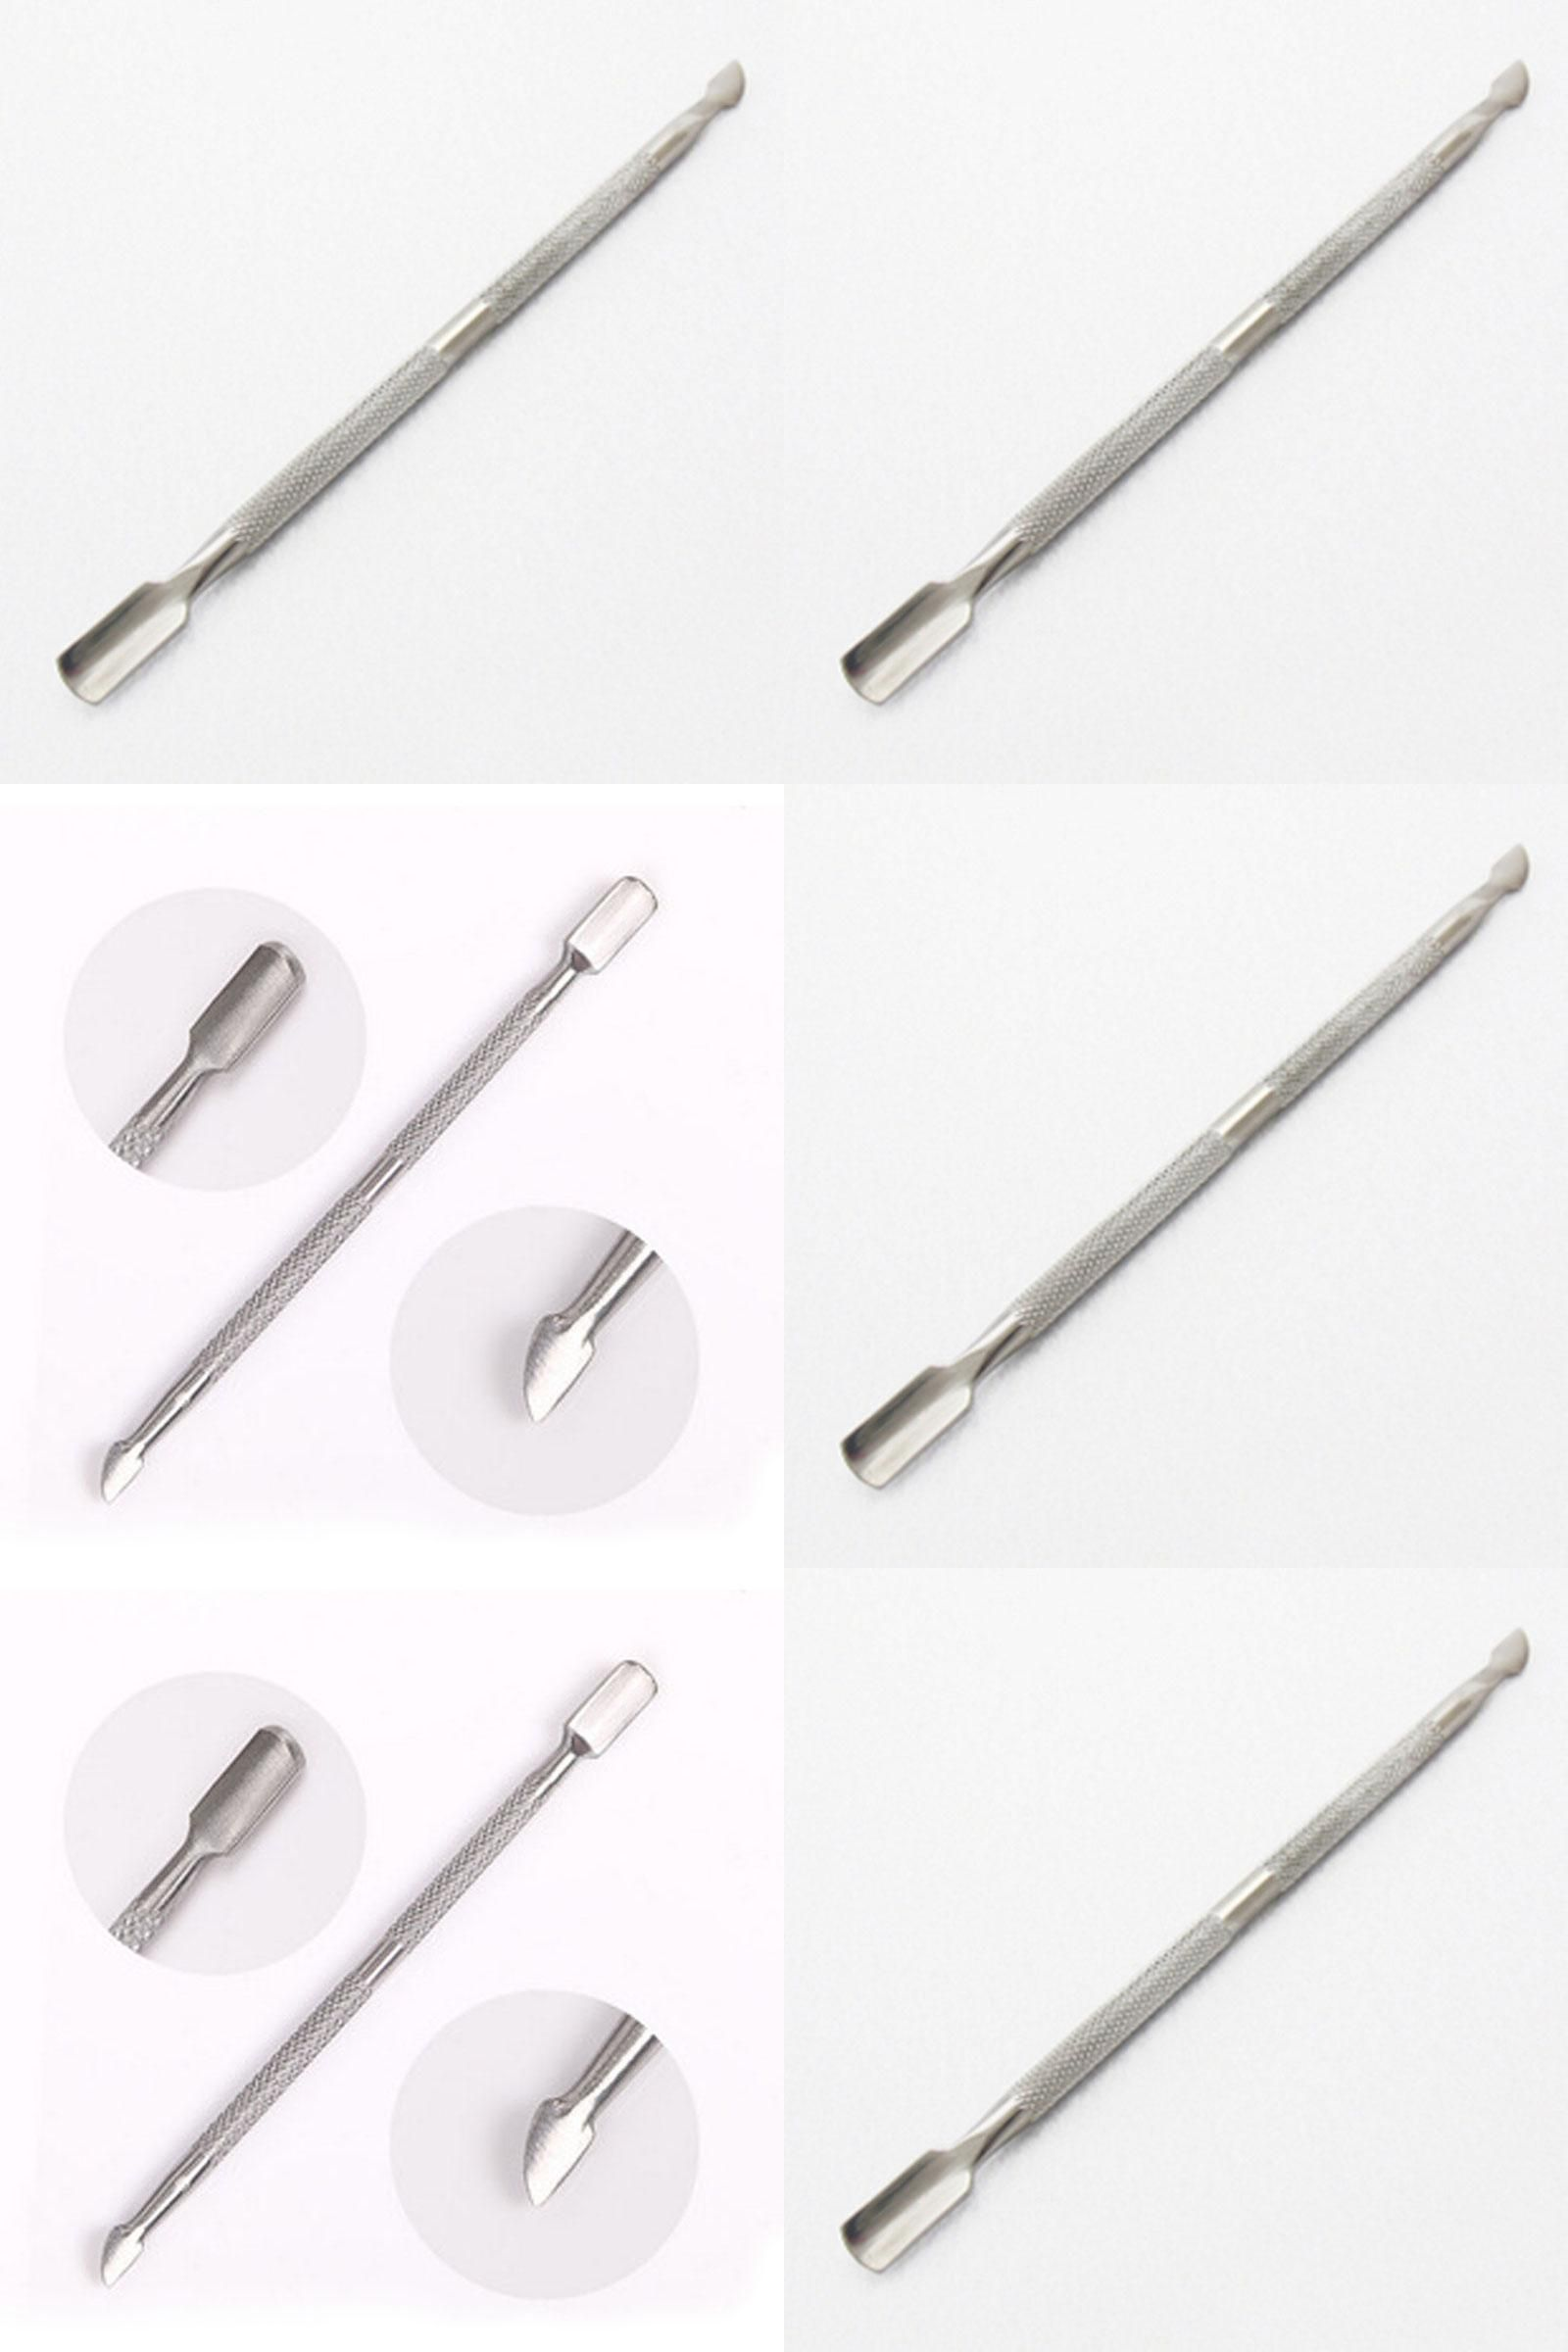 Visit to Buy] Stainless Steel Cuticle Nail Pusher Cleaner Spoon ...